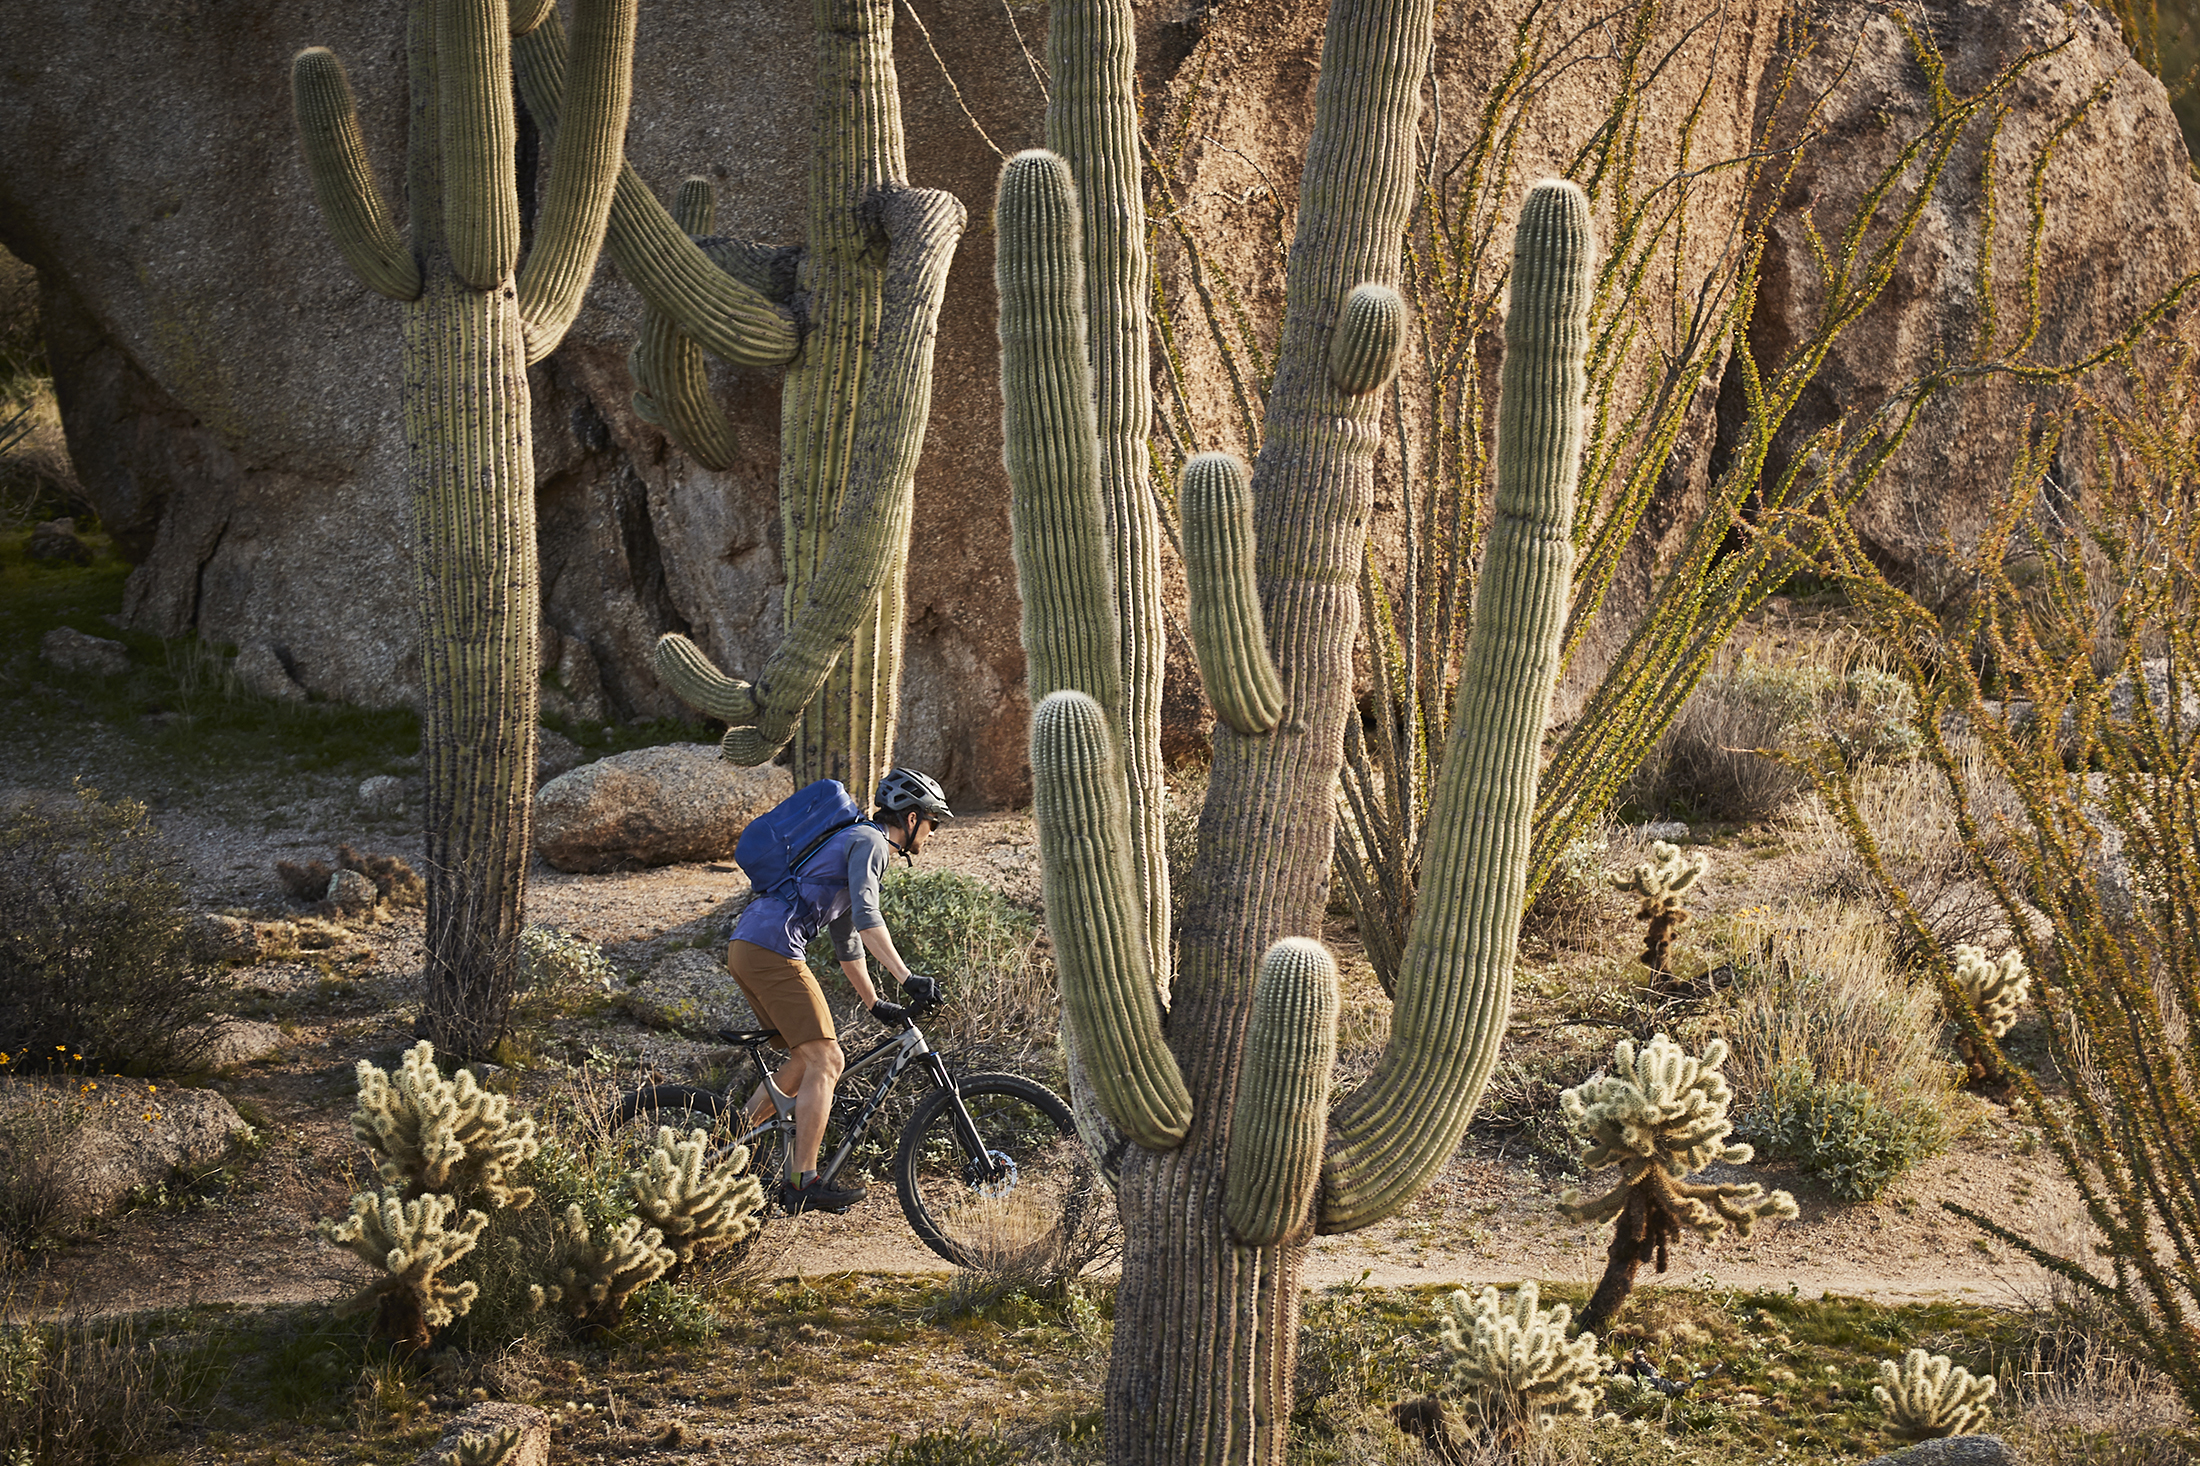 Mountain biker riding on trail through cacti, carrying Hydro Flask Journey pack